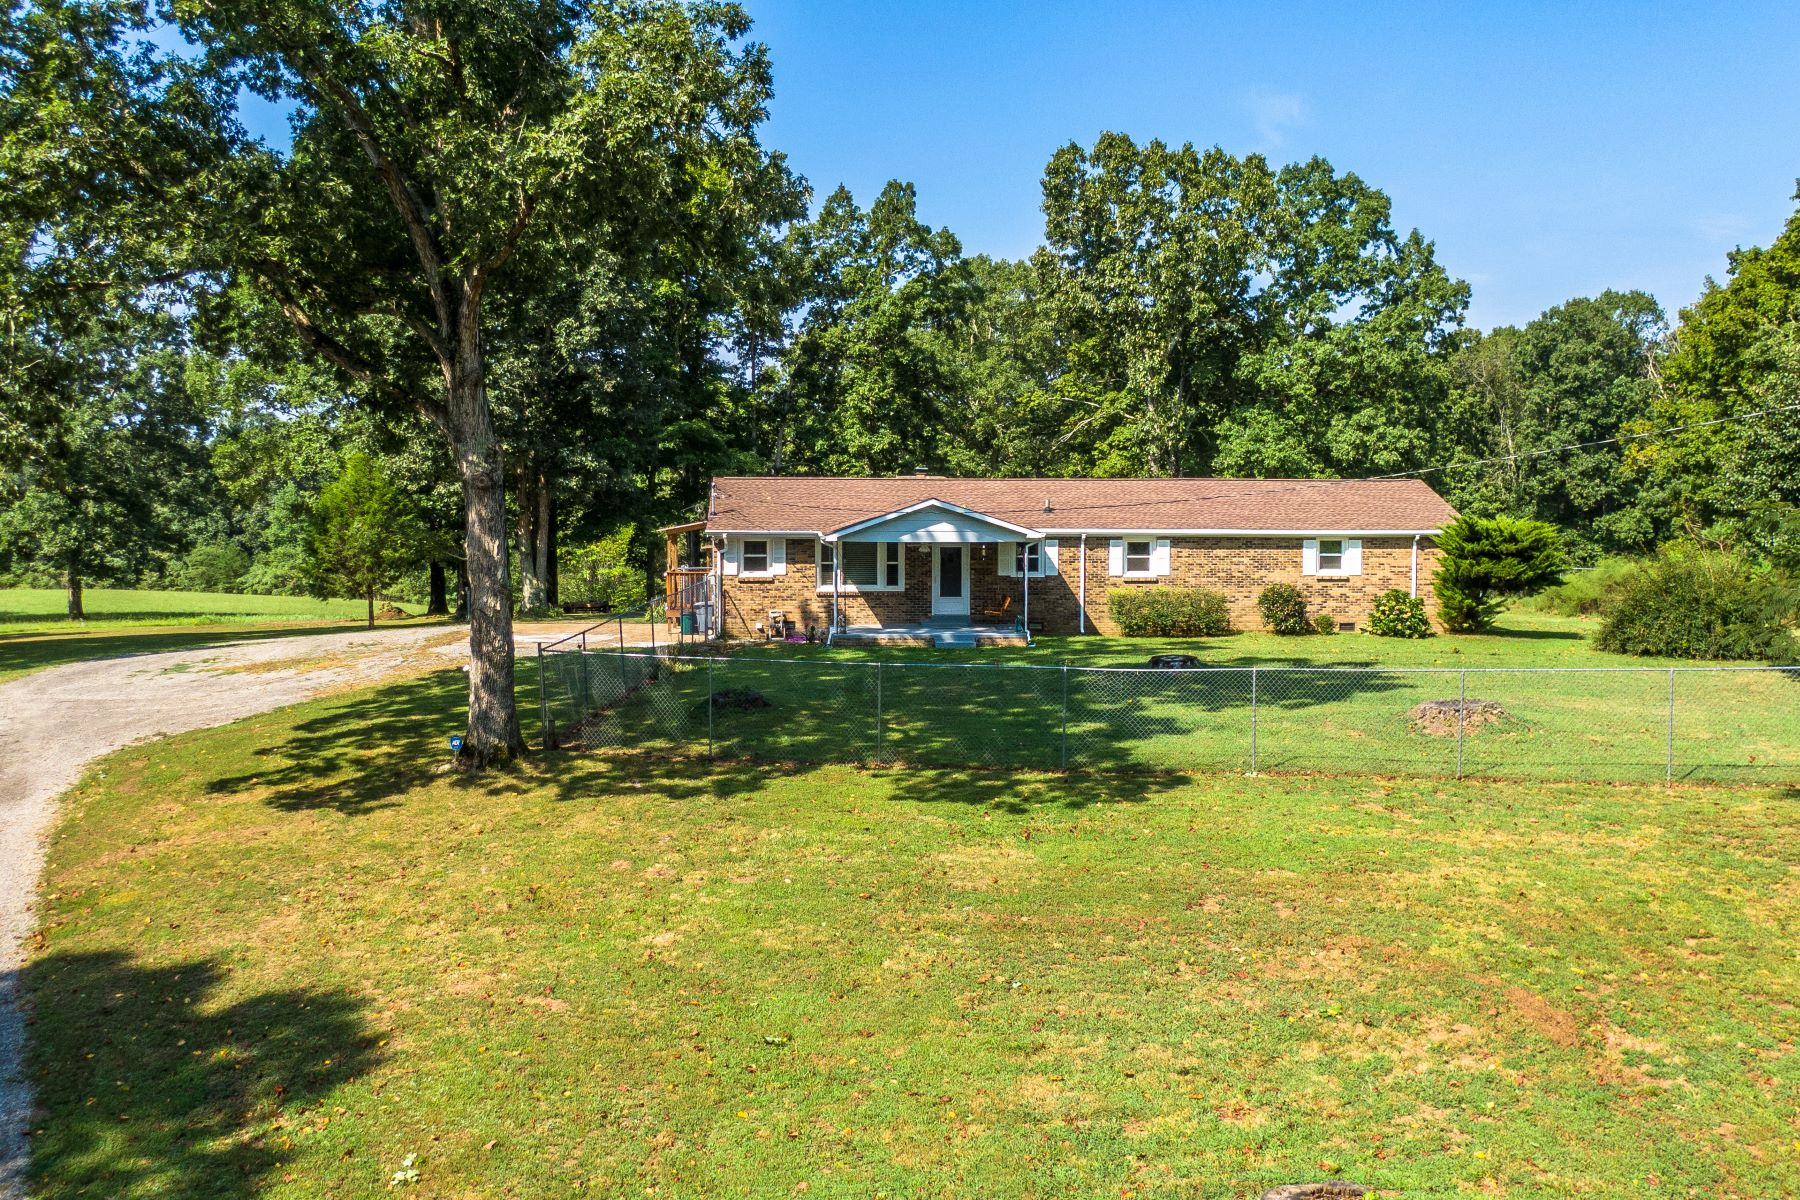 Single Family Homes for Active at Convenient Country Living 9496 Old Locust Creek Road Bon Aqua, Tennessee 37025 United States